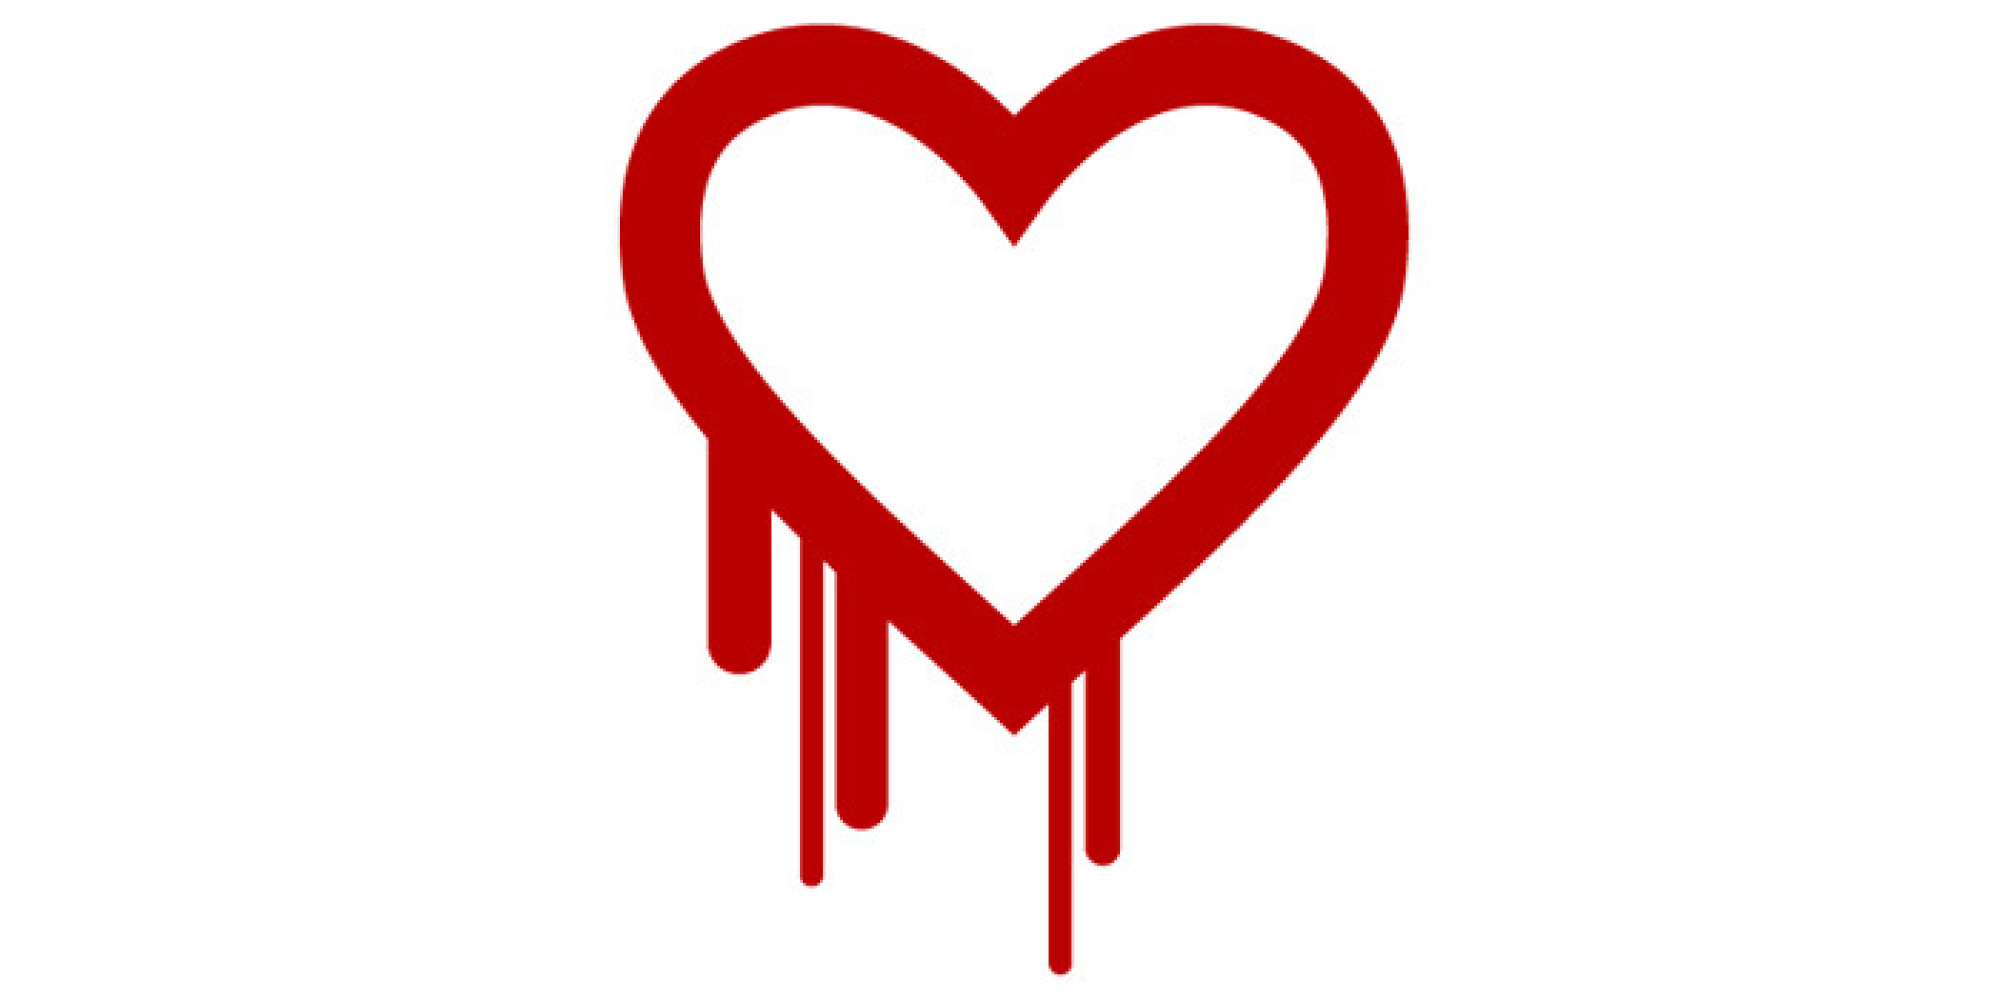 New Software Bug May Be Worse Than 'Heartbleed'